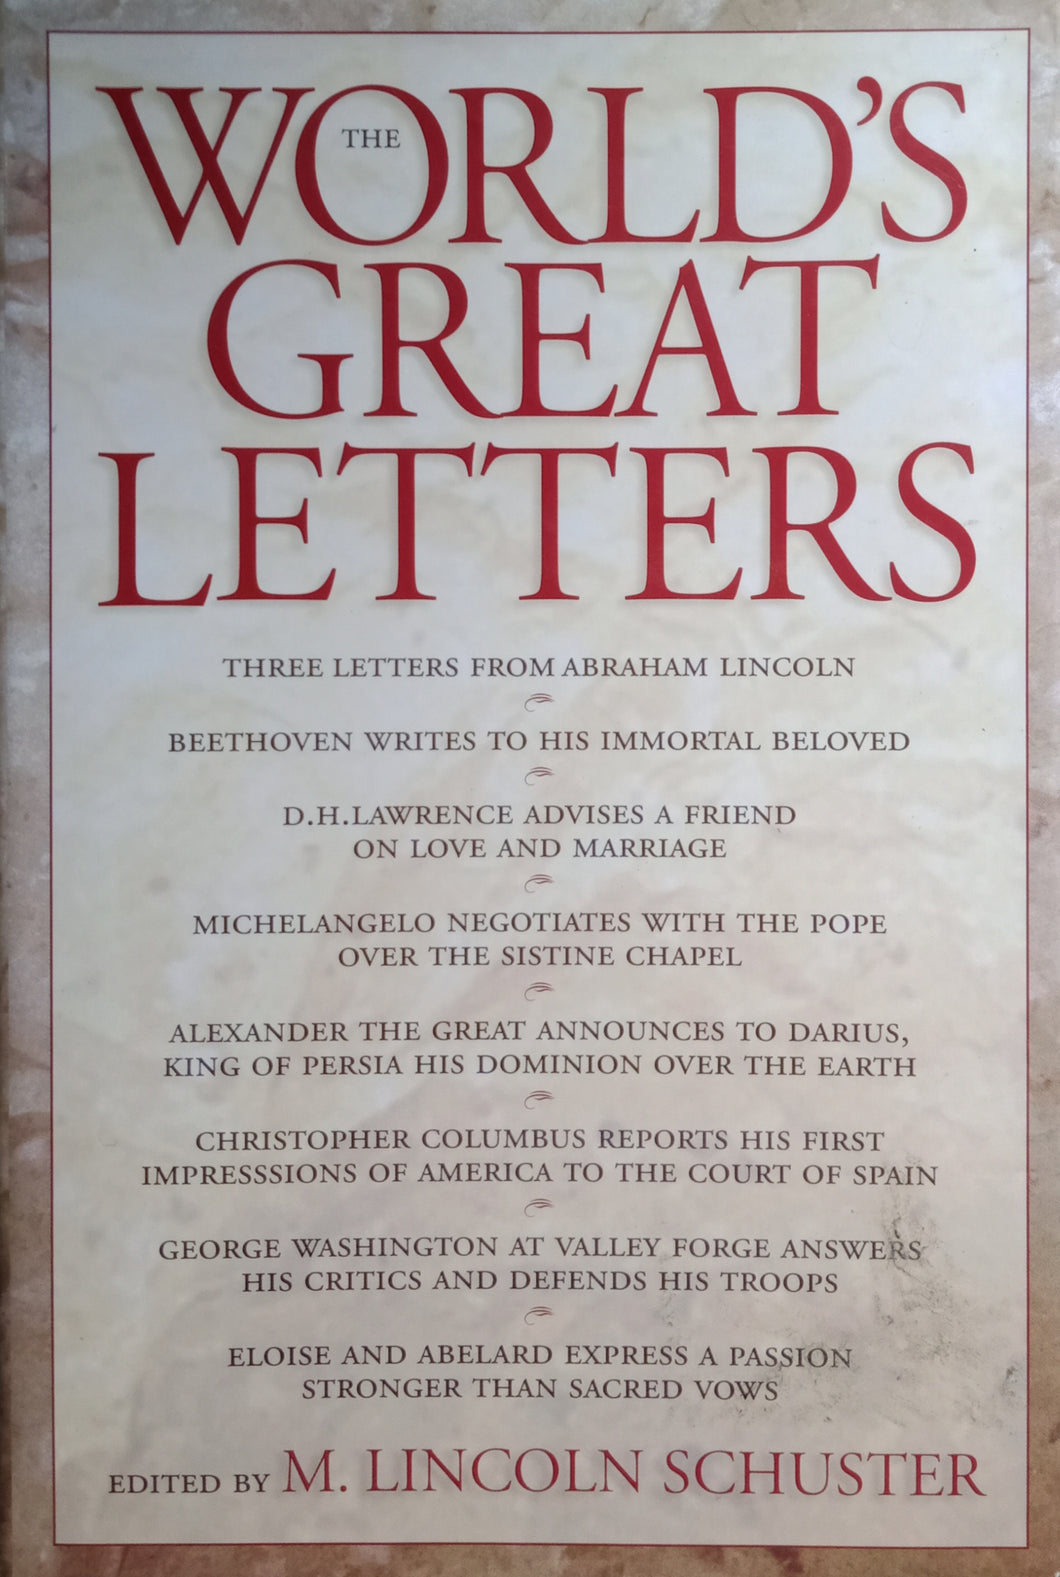 The World's Great Letters by Lincoln Schuster